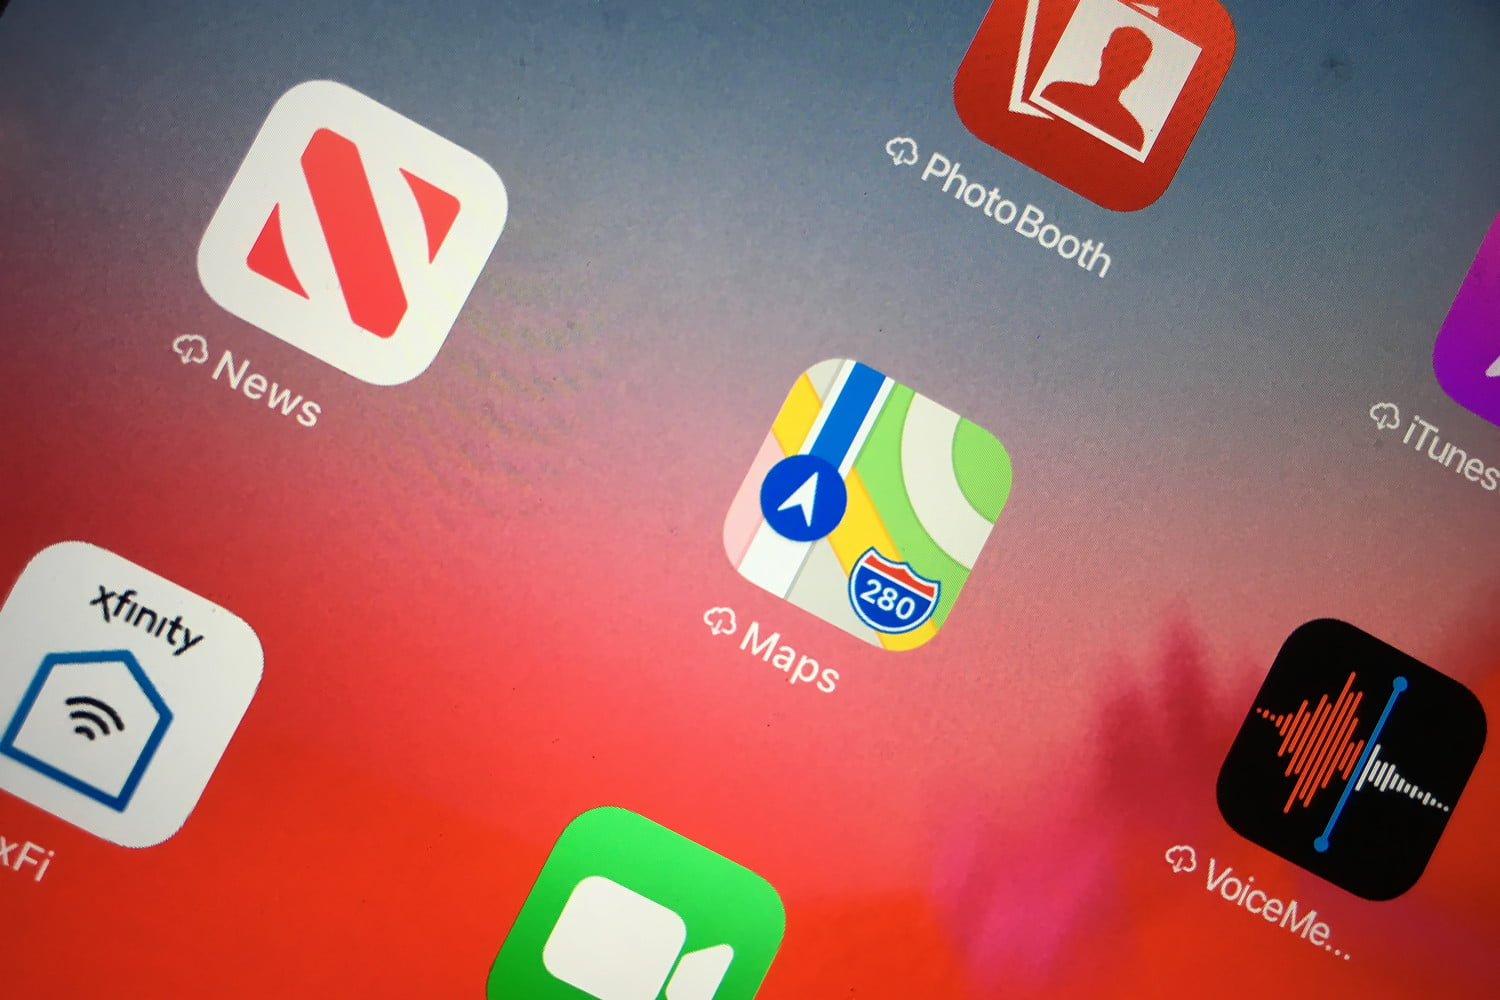 How to offload apps on your iPhone